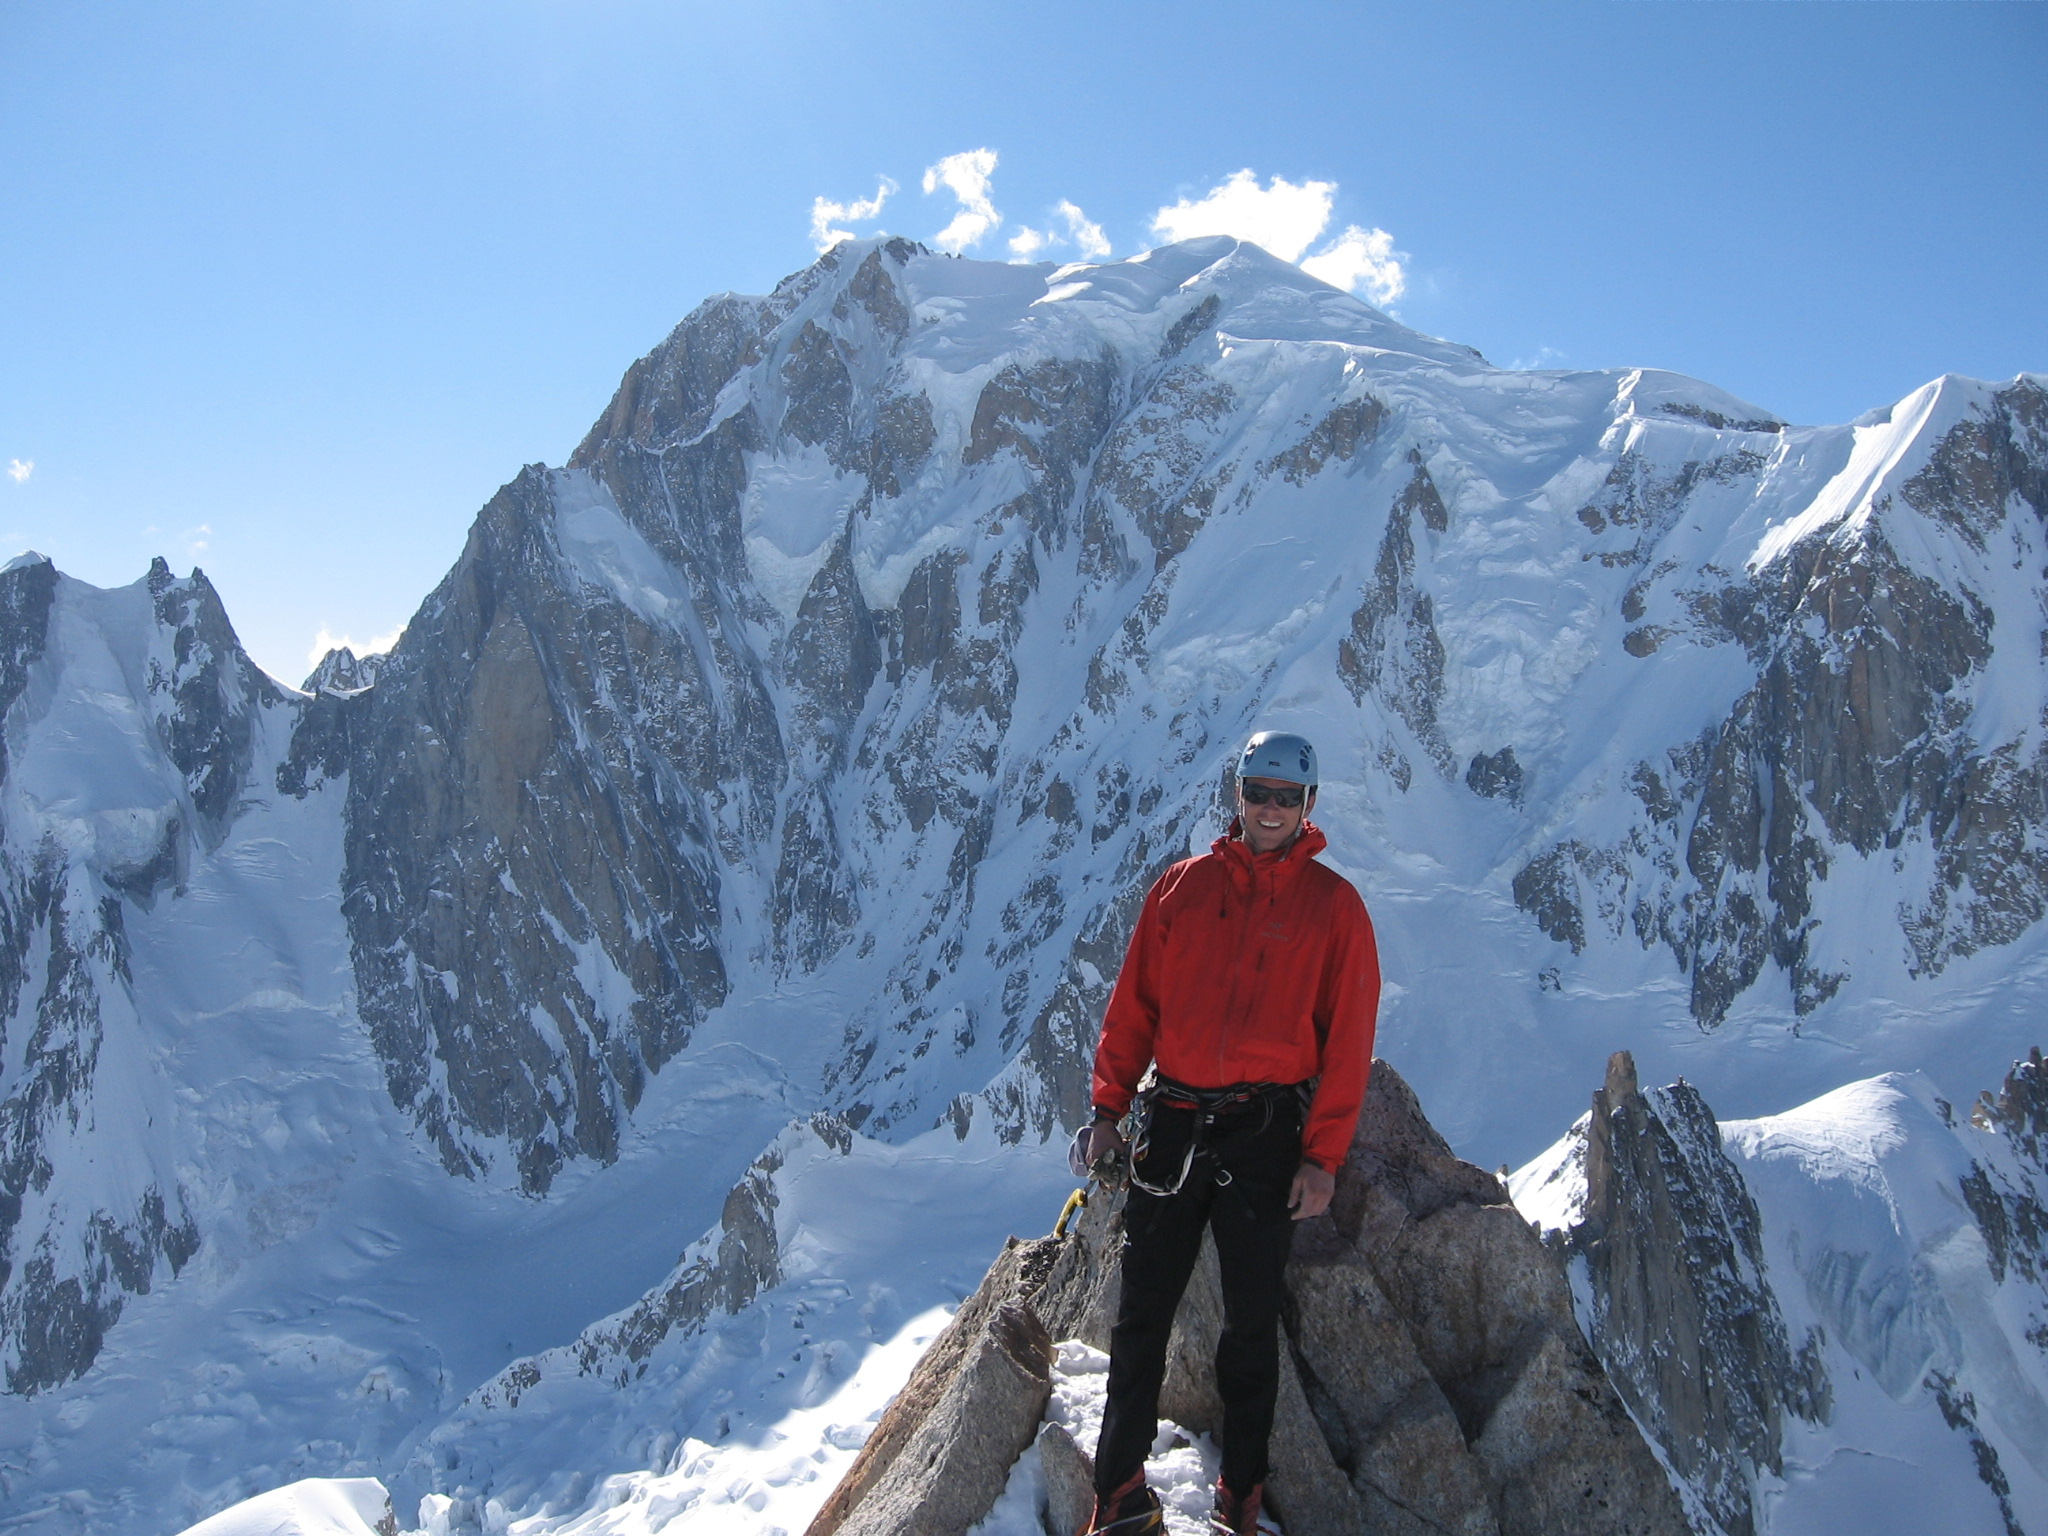 On the summit of the Tour Ronde